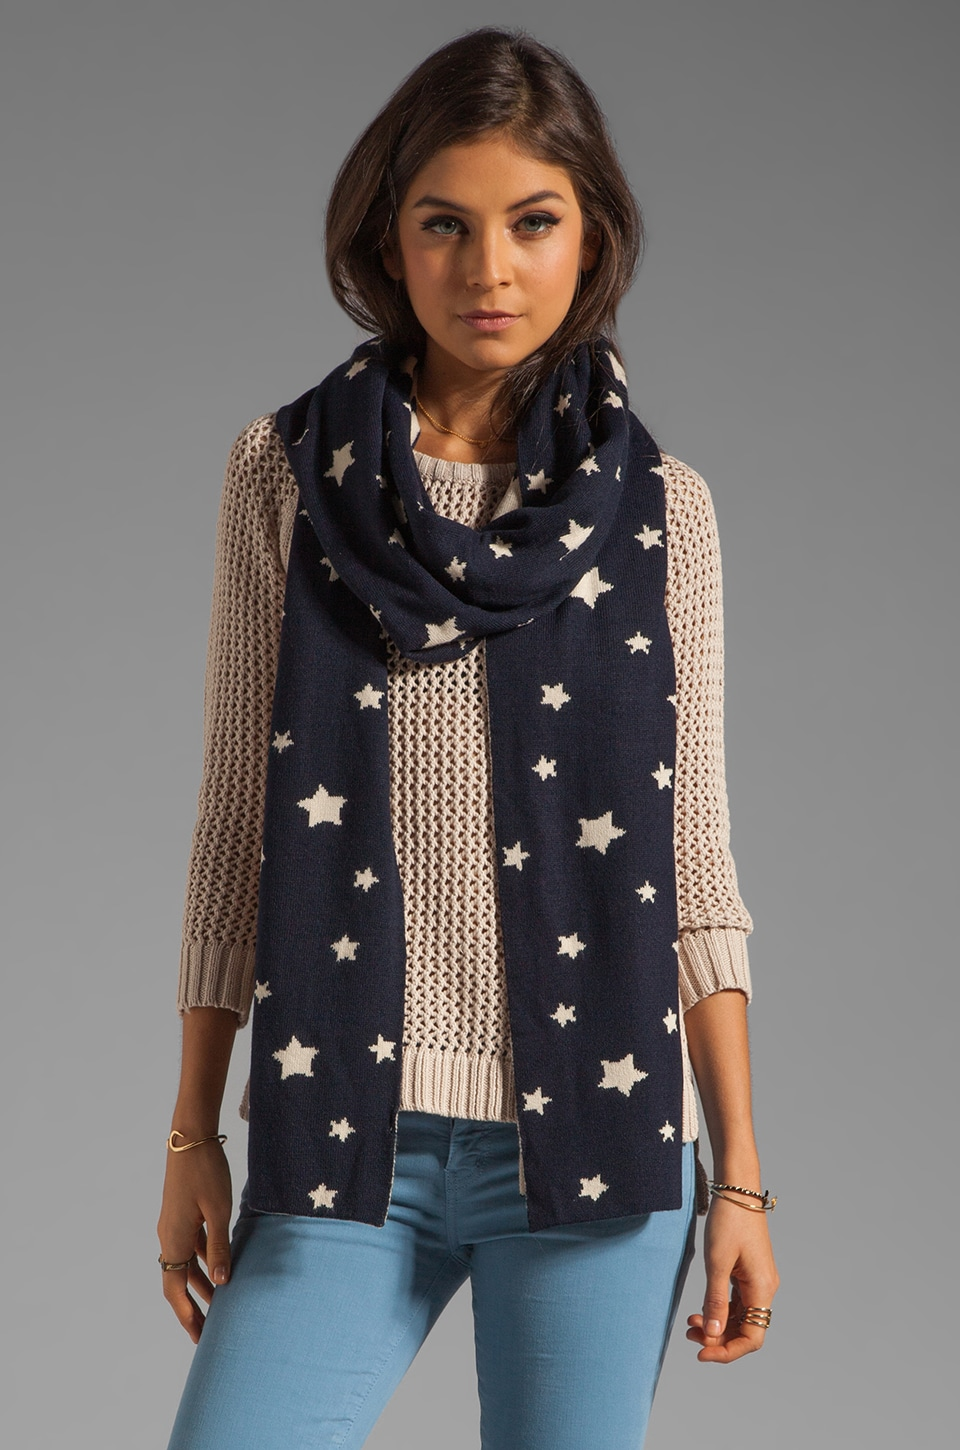 Plush Star Knit Reversible Scarf in Navy and Creme